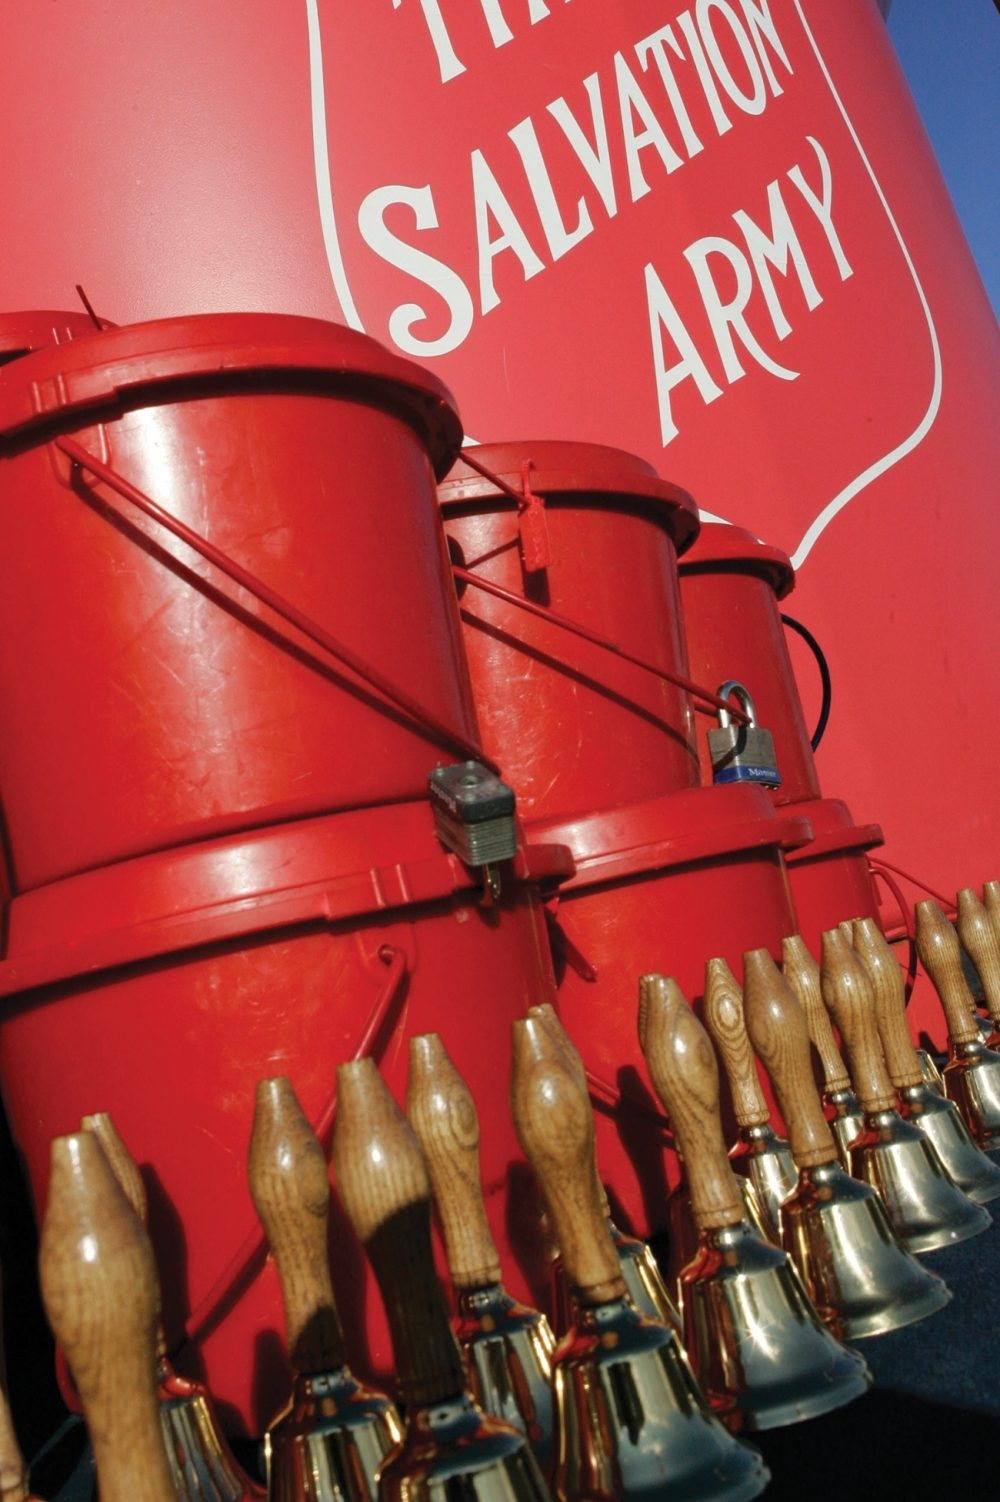 Red kettles and shiny bells have become signature symbols of The Salvation Army. Through the organization's partnership with private and public philanthropy, it continues to bring comfort to the needy while proclaiming God's redemptive love.